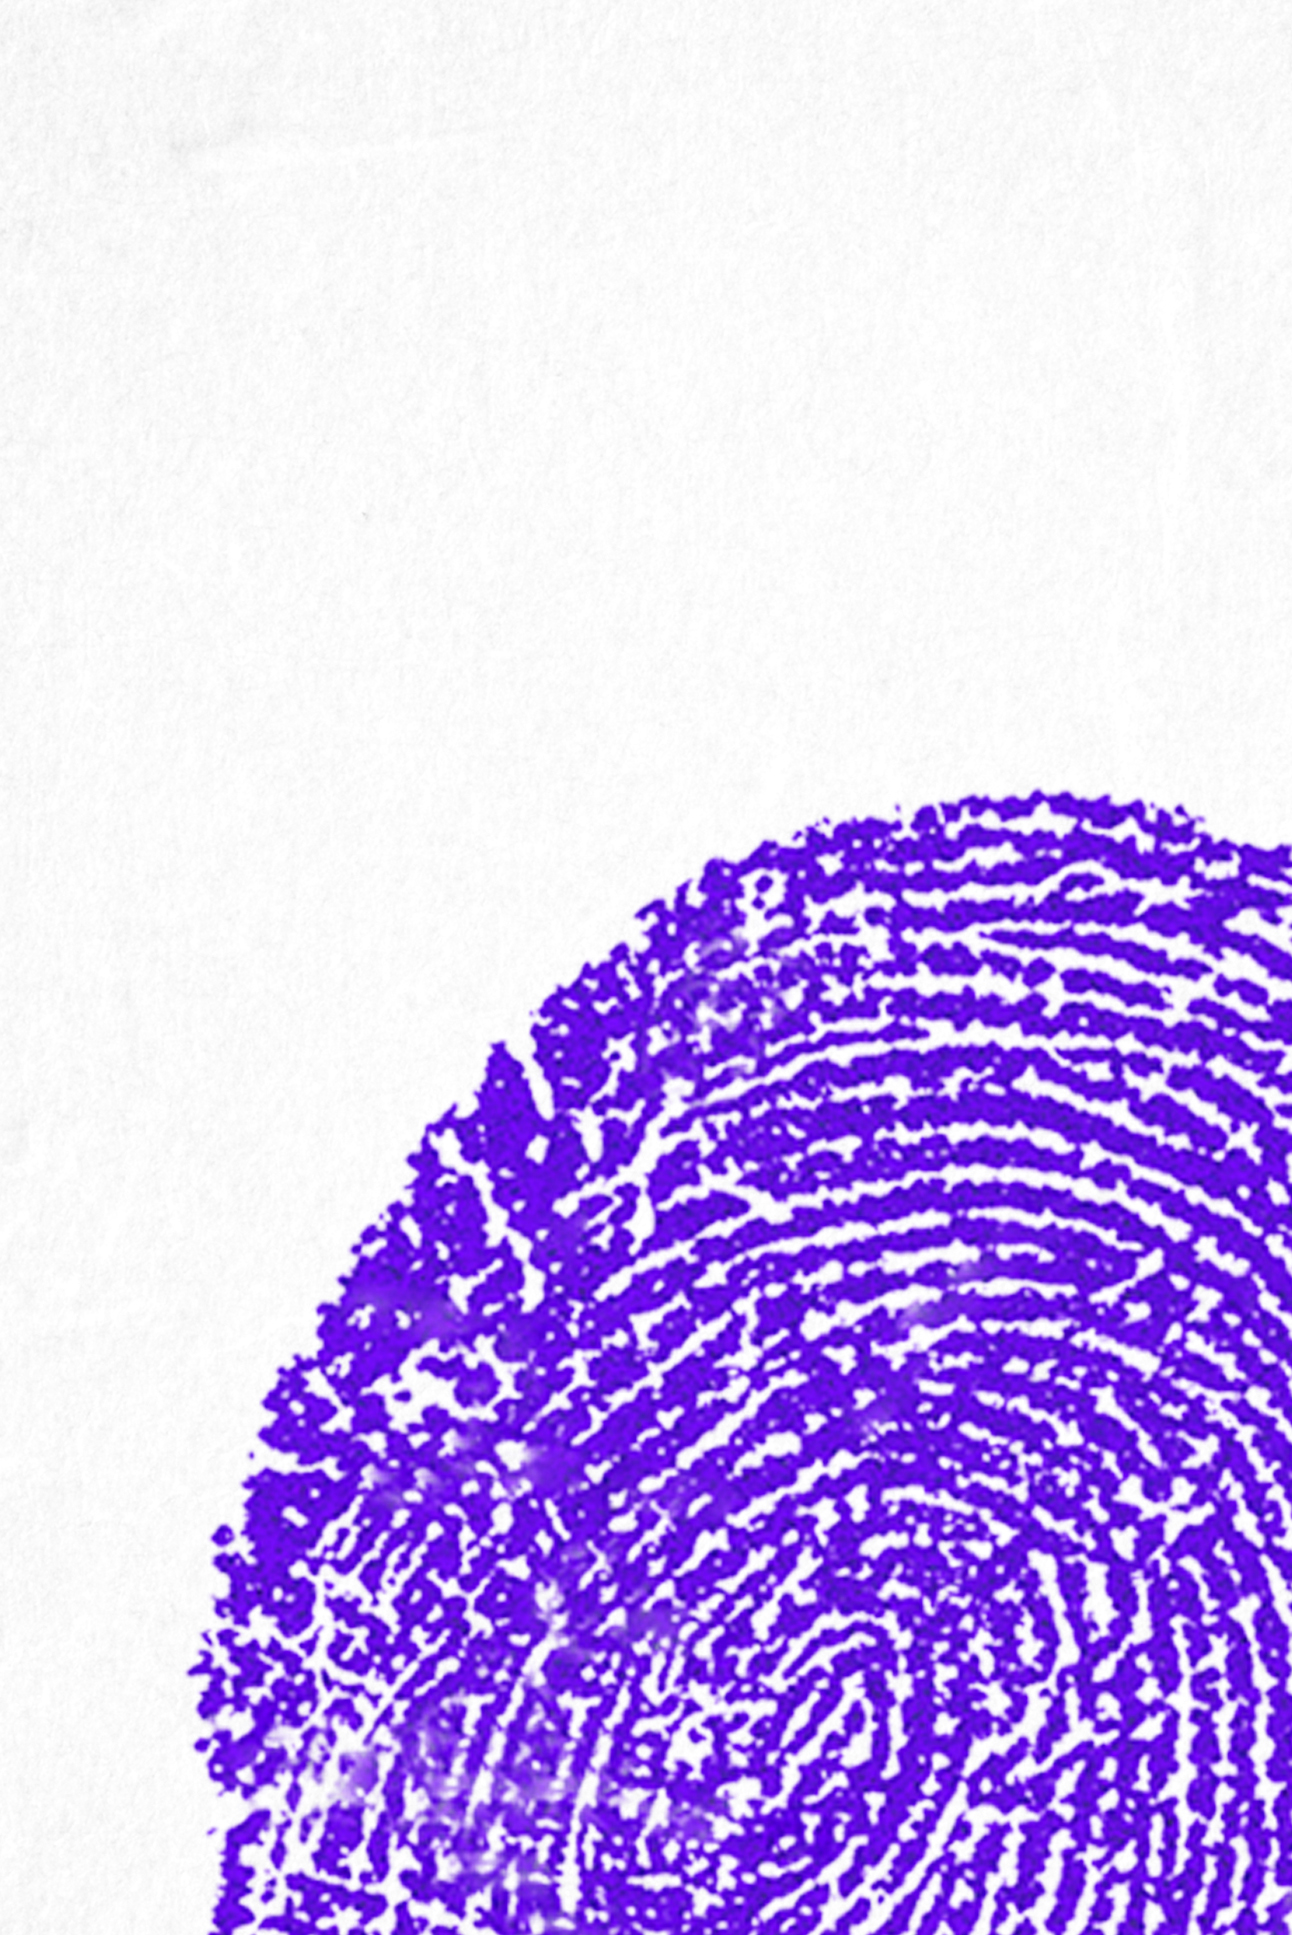 Illustration of fingerprints, colorful shapes made into animals with pen marks